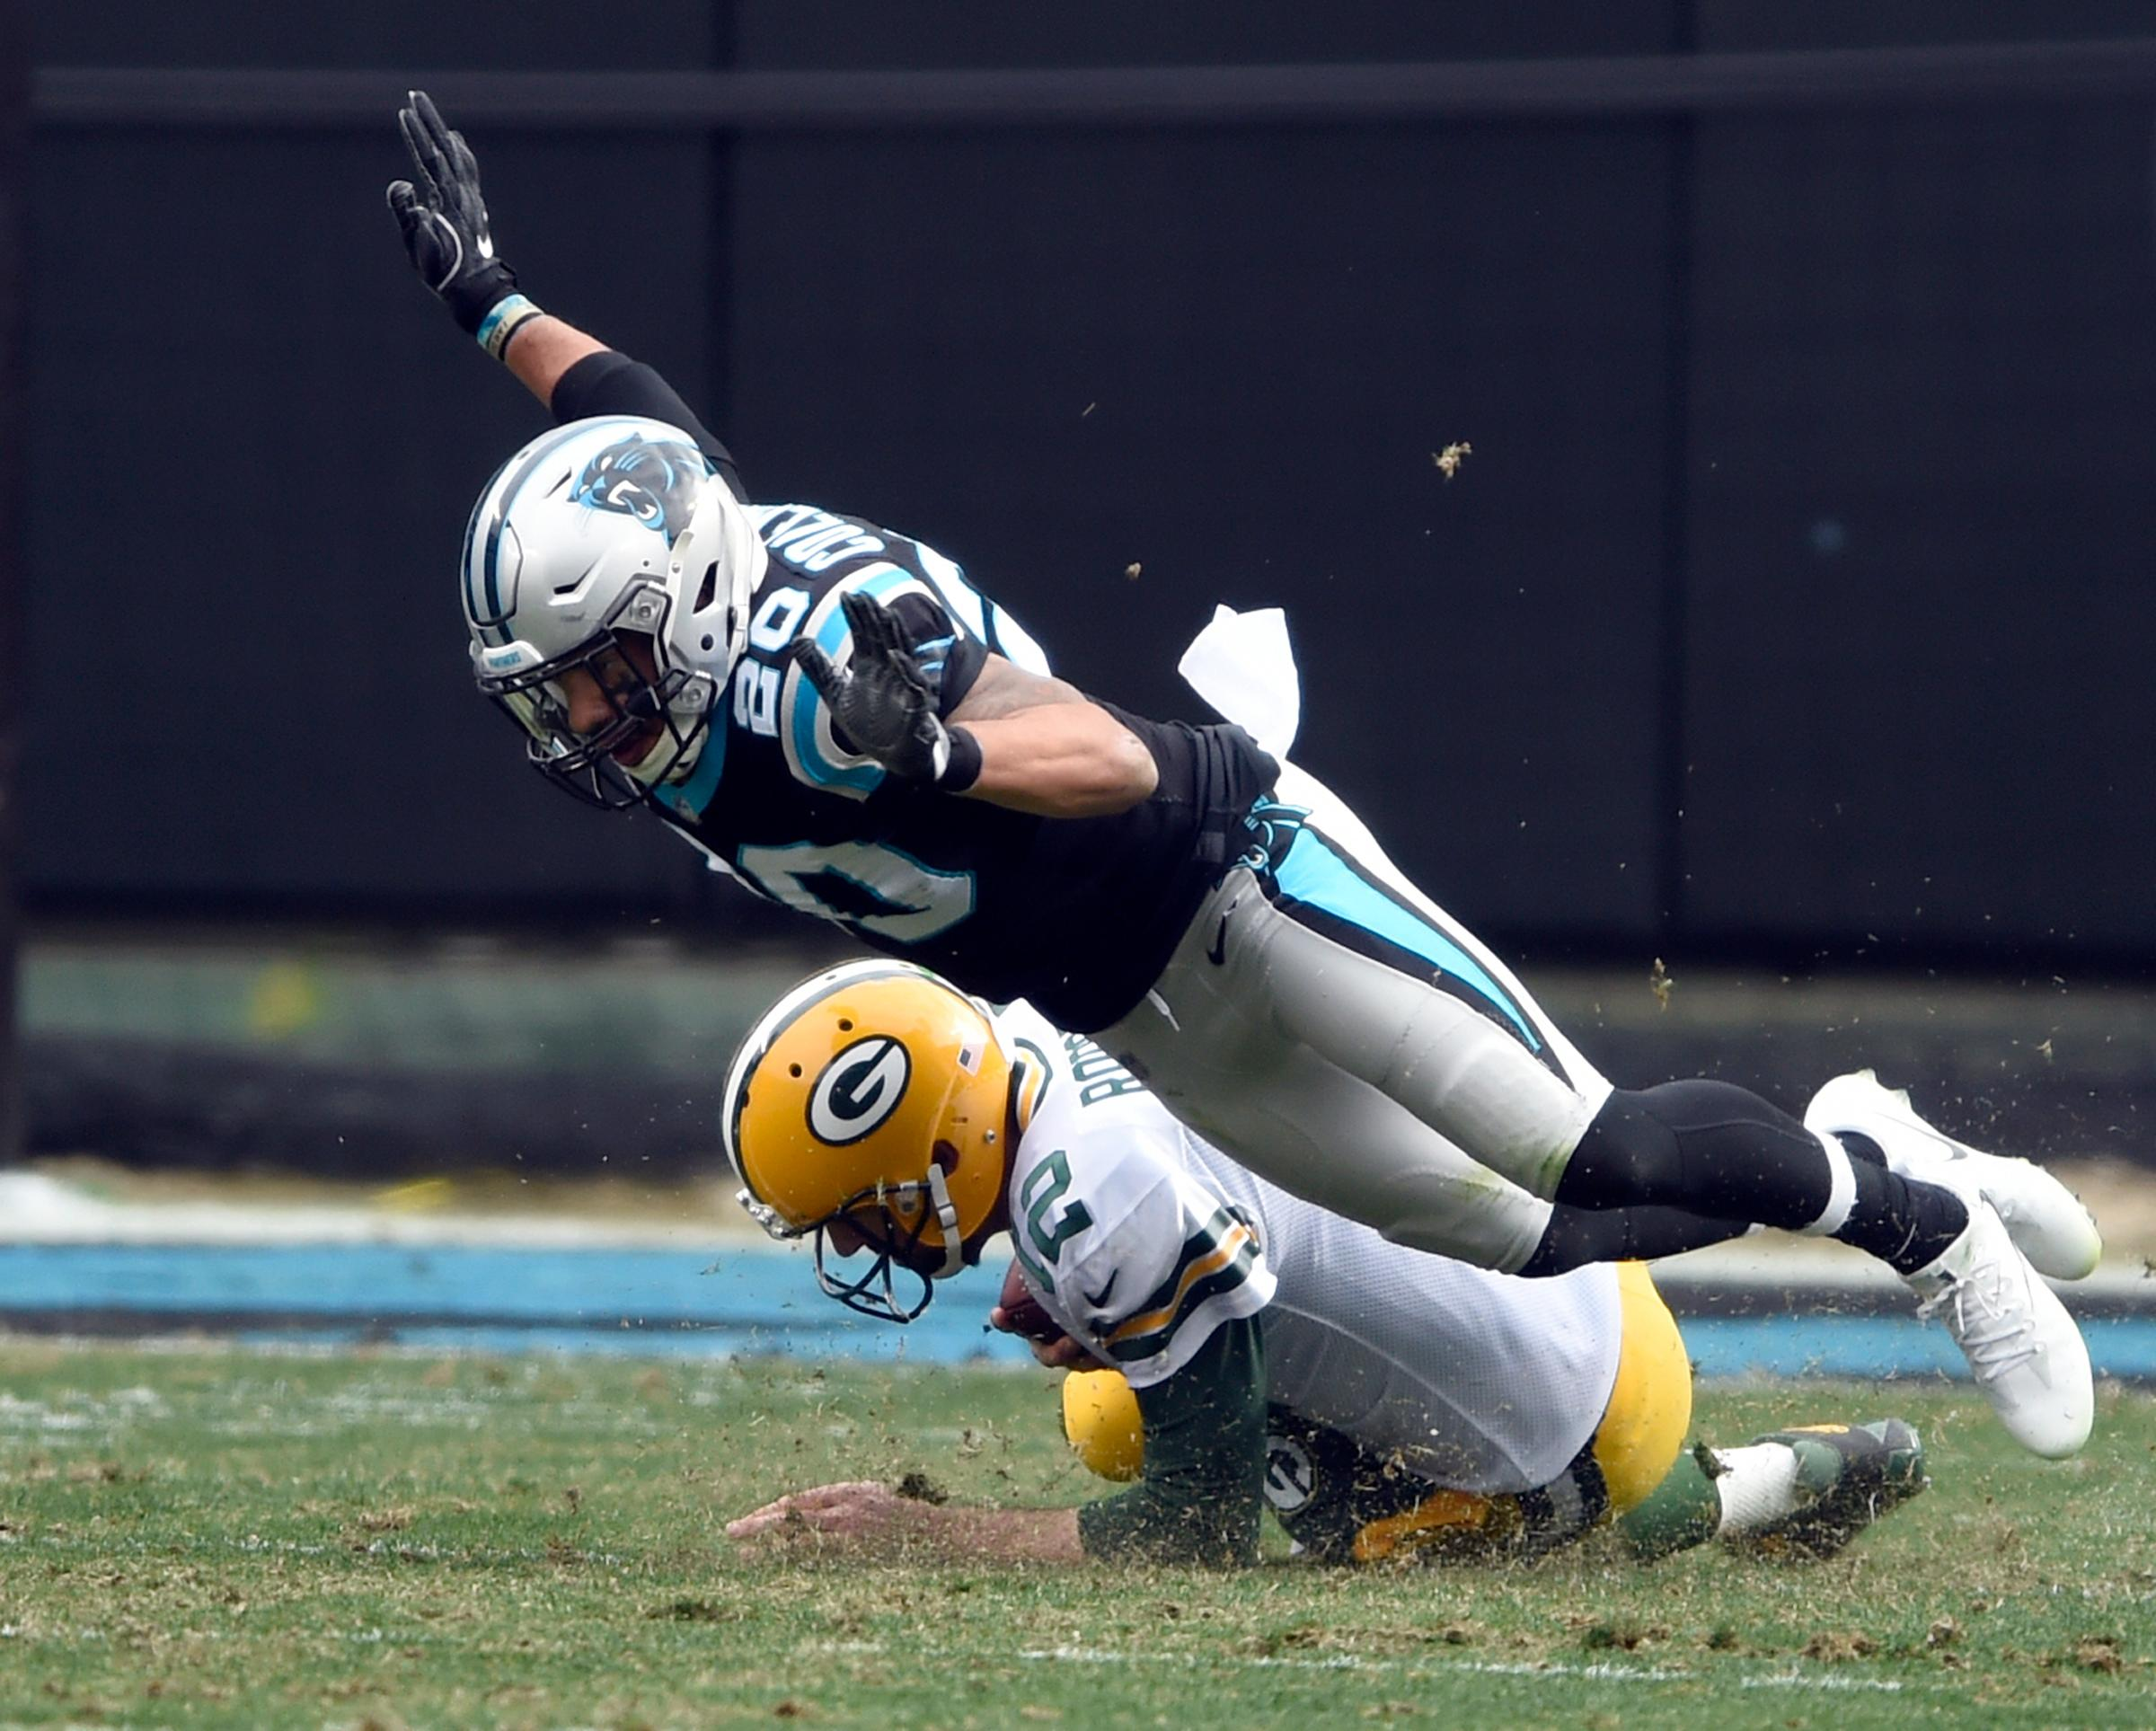 Carolina Panthers' Kurt Coleman (20) flies over a sliding Green Bay Packers' Aaron Rodgers (12) during the first half of an NFL football game in Charlotte, N.C., Sunday, Dec. 17, 2017. (AP Photo/Mike McCarn)